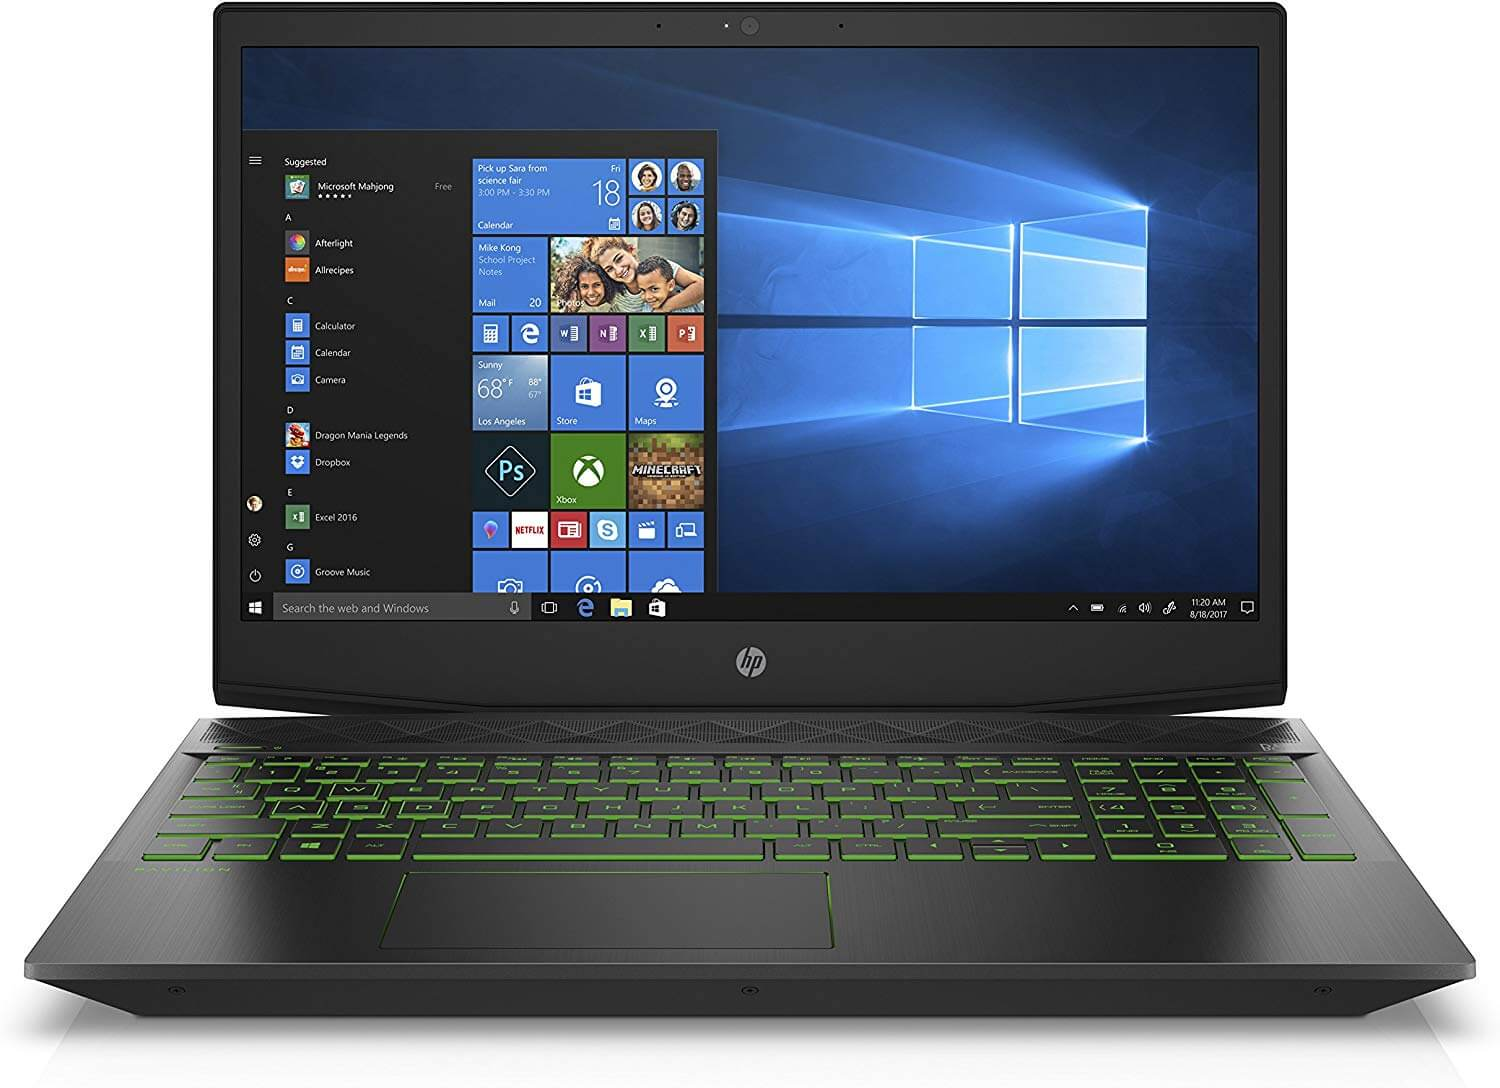 HP Pavilion 15-cx0020ne Notebook With 15.6-Inch Display, Core i7 Processor/16GB RAM/1TB HDD/4GB NVIDIA GeForce GTX 1050 Graphic Card With English/Arabic Keyboard Black